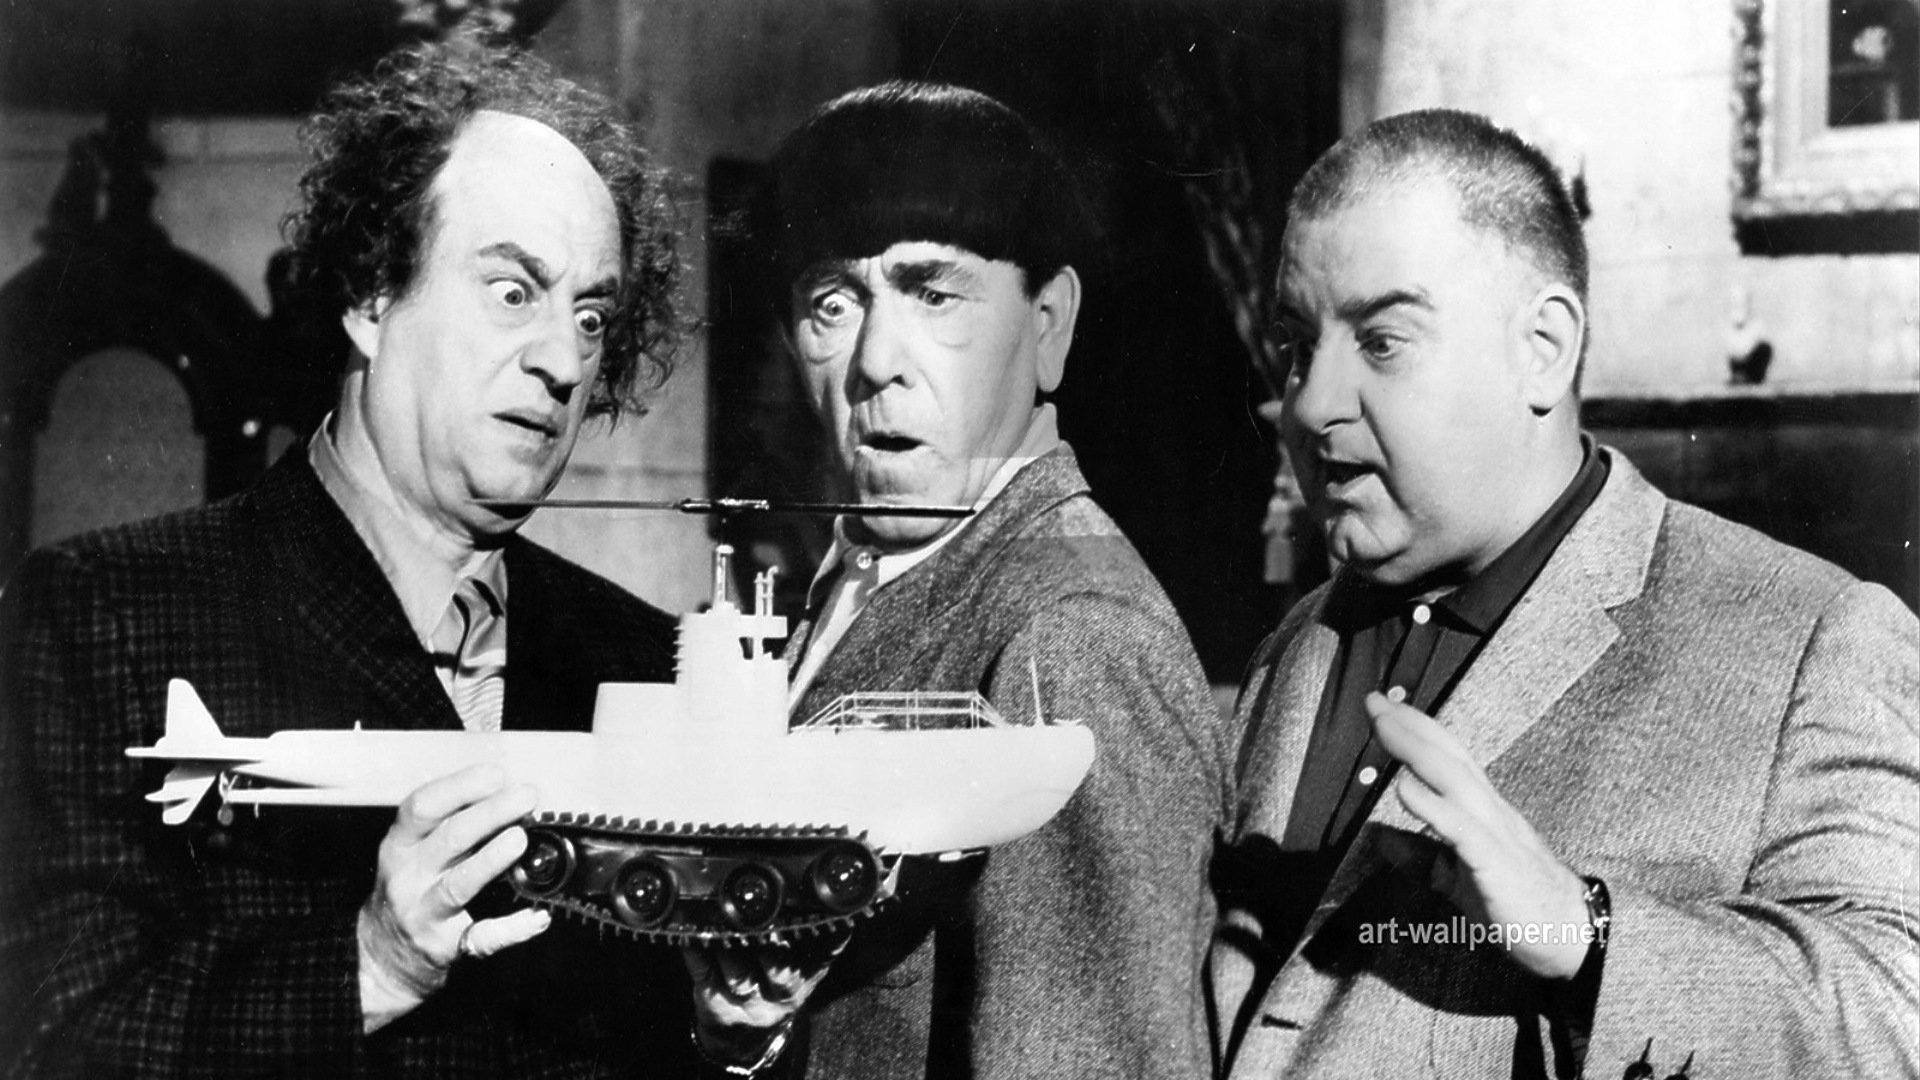 The Three Stooges - (l to r) Larry, Moe, Curly Joe holding the model of the tank/submarine/helicopter/rocketship in The Three Stooges in Orbit (1962)